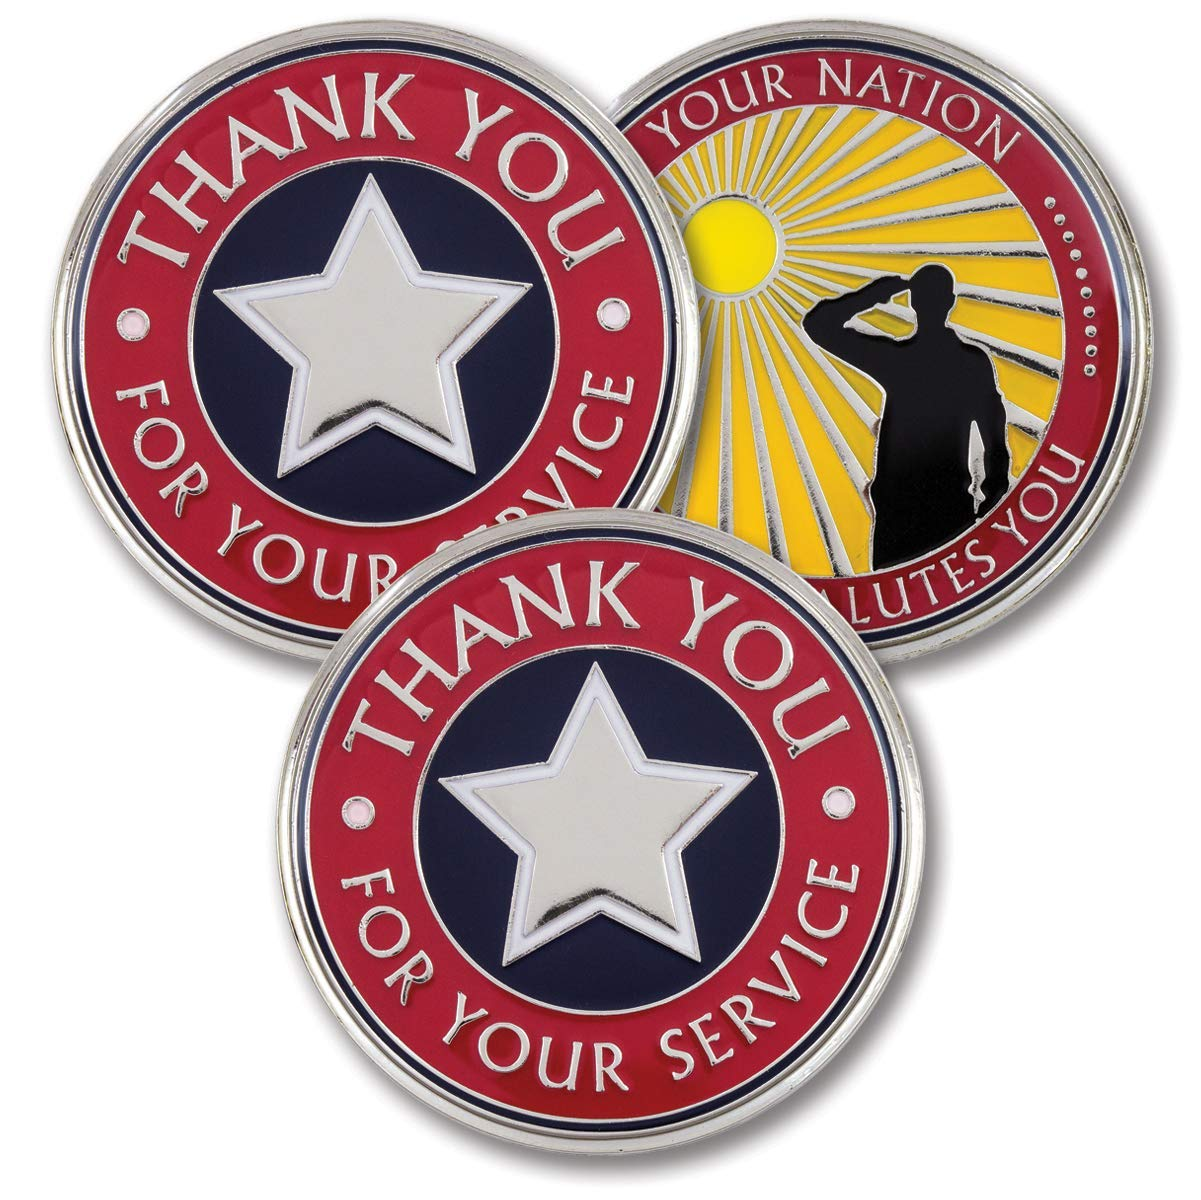 Thank You for Your Service – Challenge Coins – Bold Direct